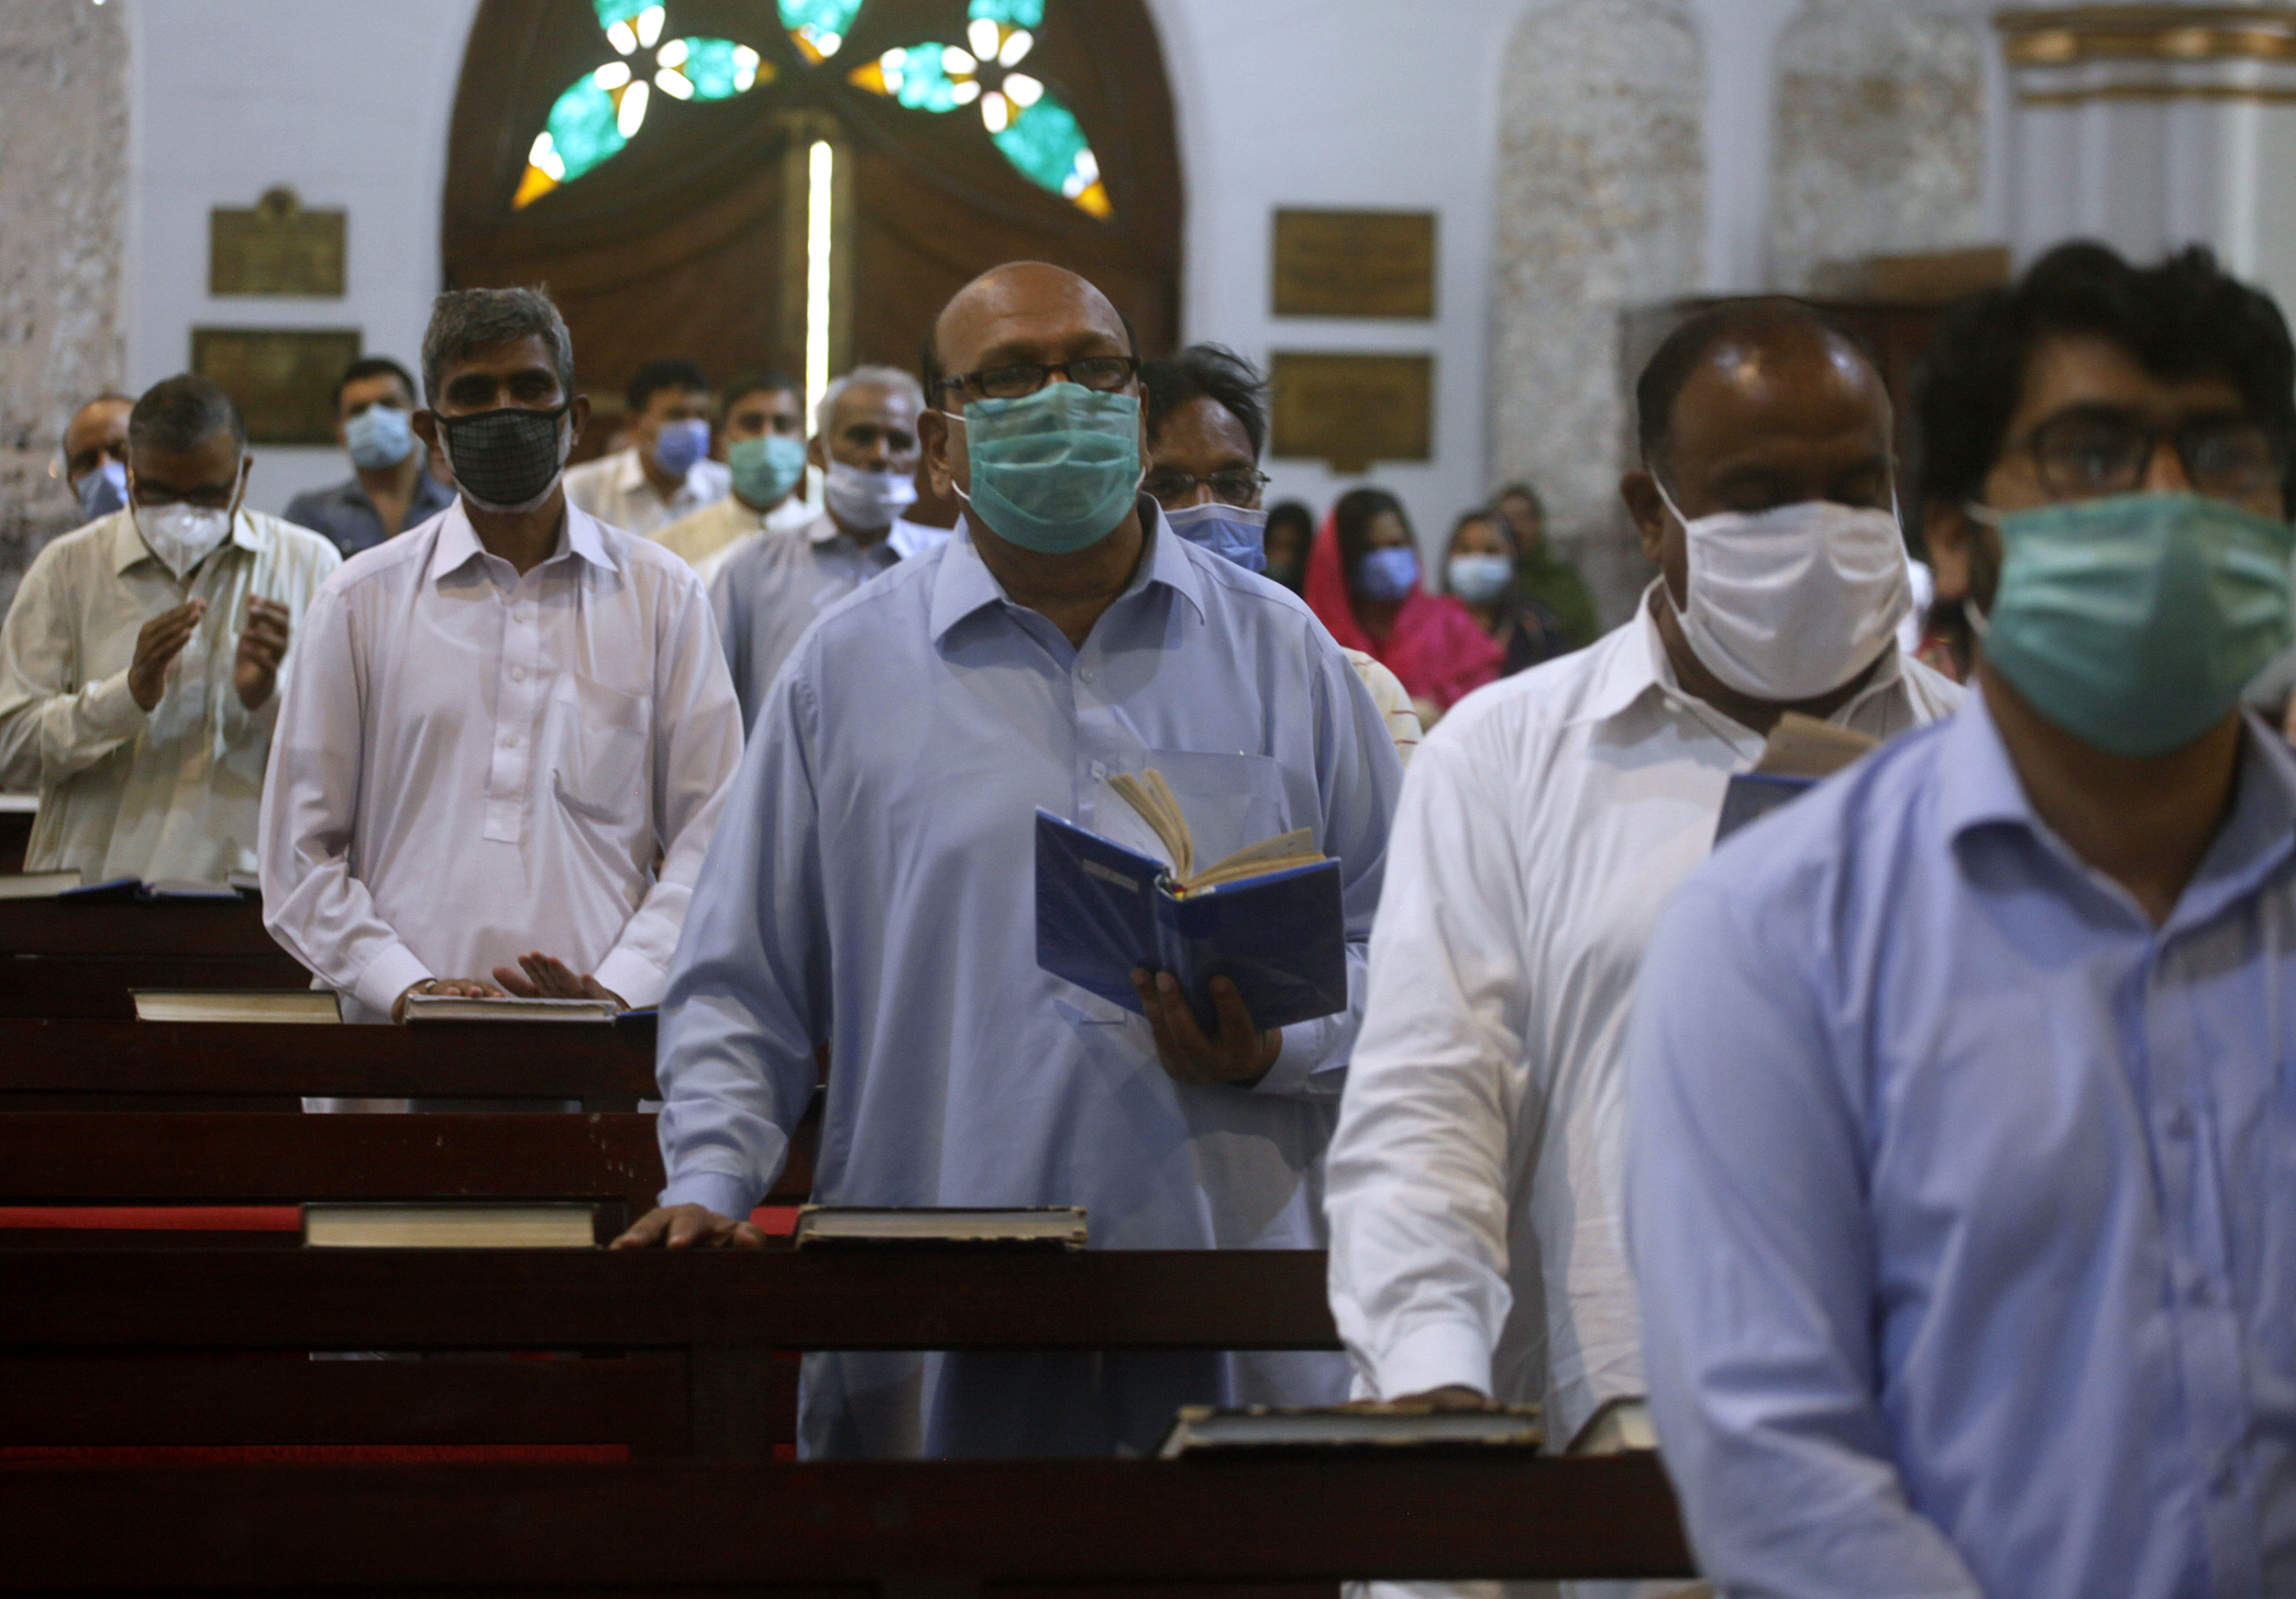 Christians wearing face masks to help curb the spread of the coronavirus attend Sunday Mass at Cathedral Church in Peshawar, Pakistan, Sunday, May 31, 2020. (AP Photo/Muhammad Sajjad)